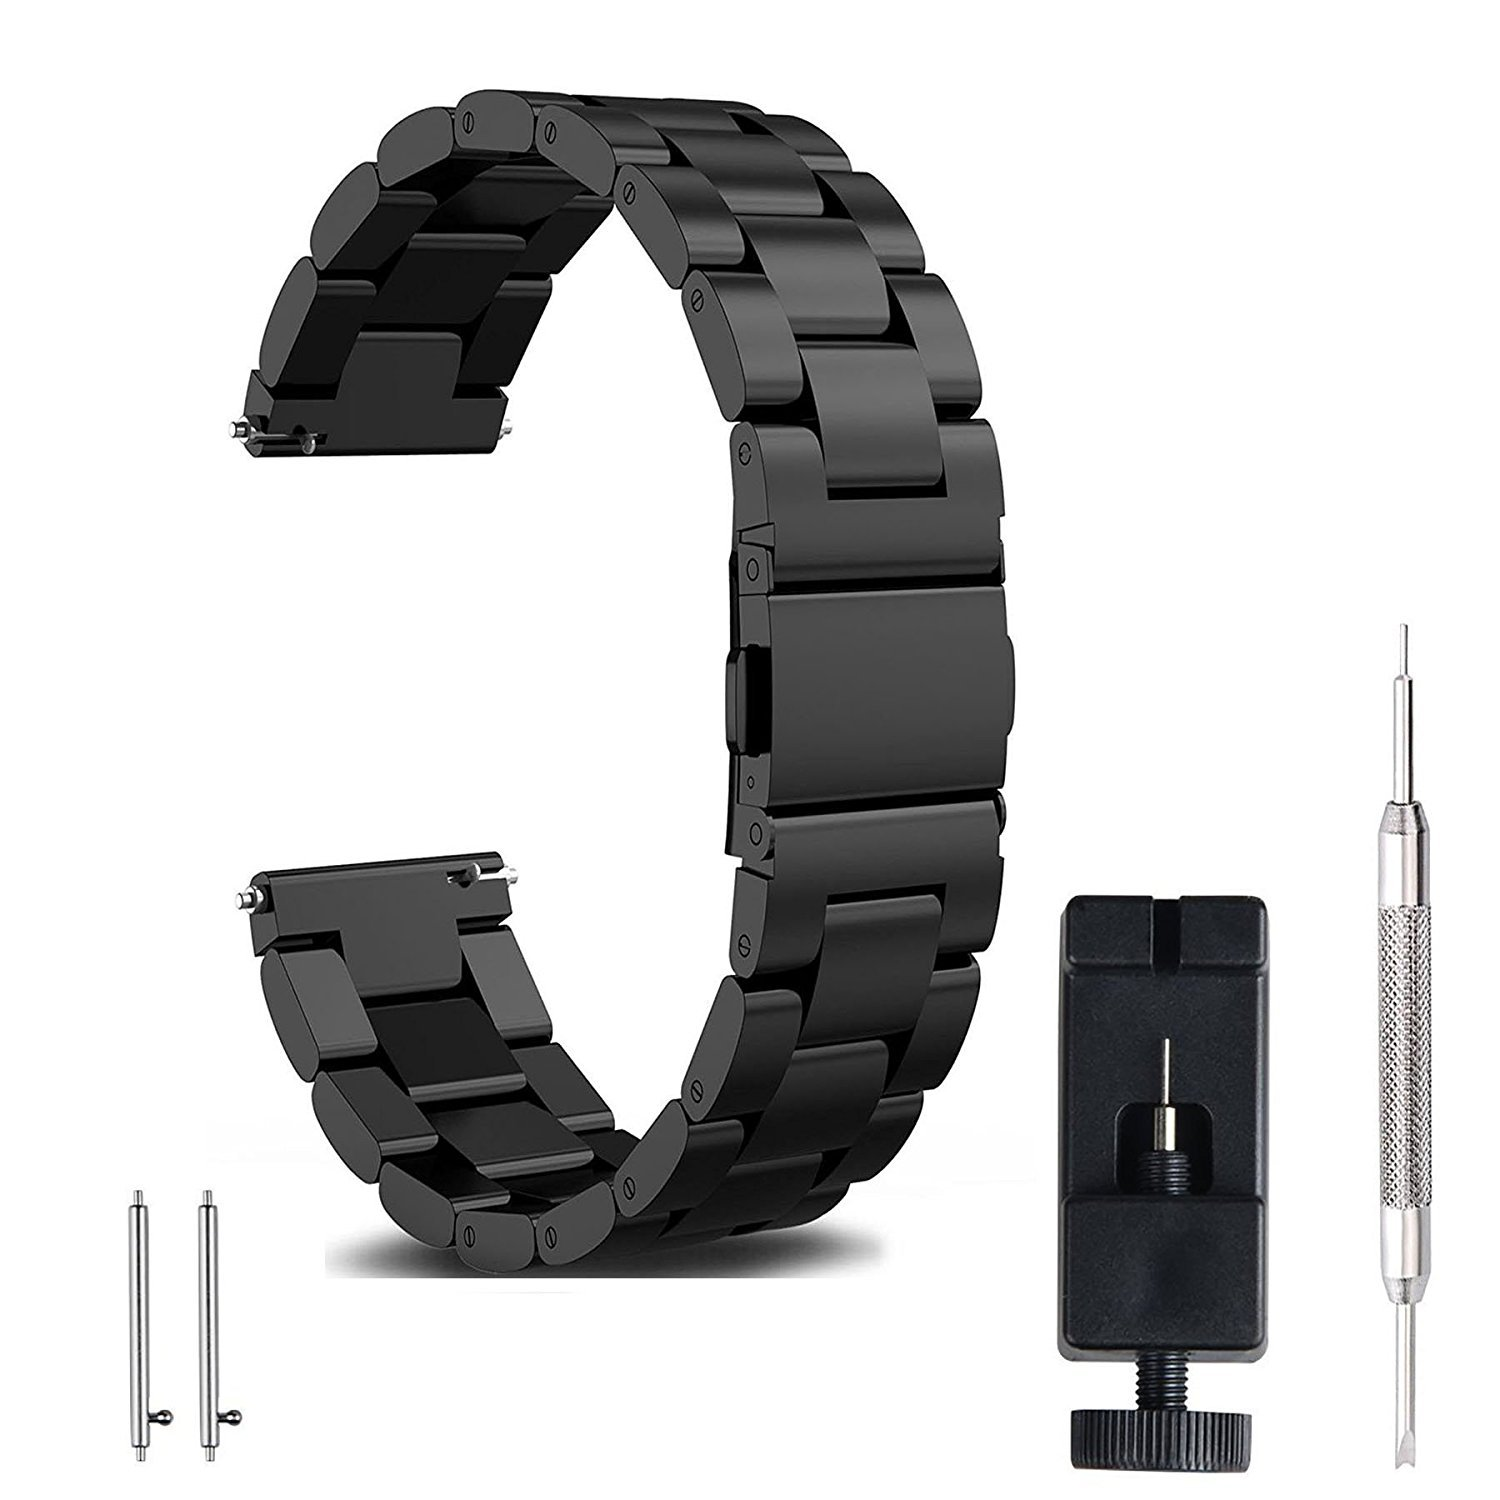 7d2cbd0600 FashionAids 22mm 20mm 18mm watch strap watch band, Stainless Steel Band  Strap Metal Replacement Band Bracelet Strap + Tools + Pins for Men's  Women's Watch, ...